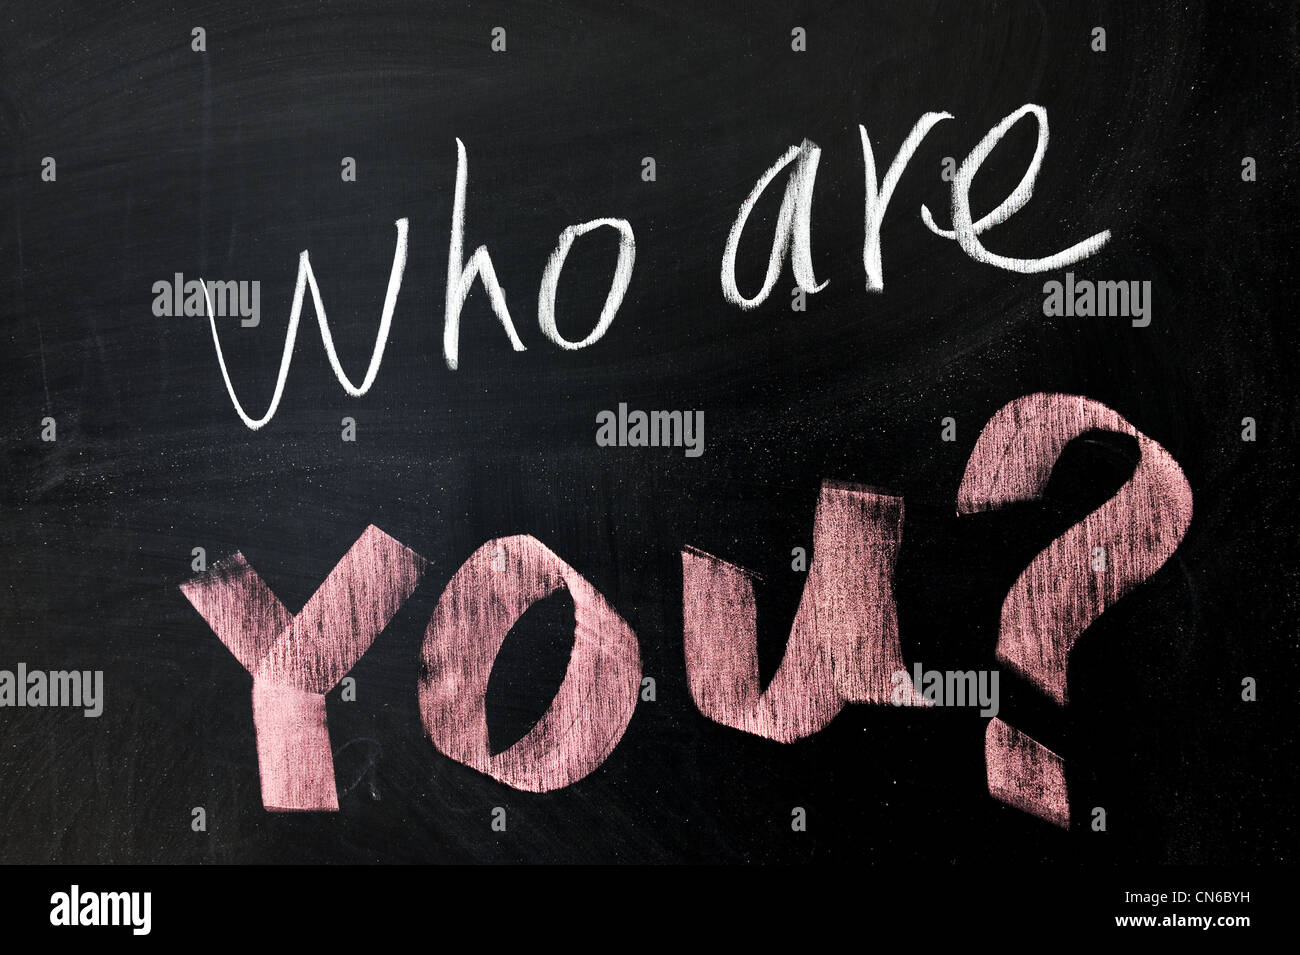 Chalk drawing - Who are you - Stock Image